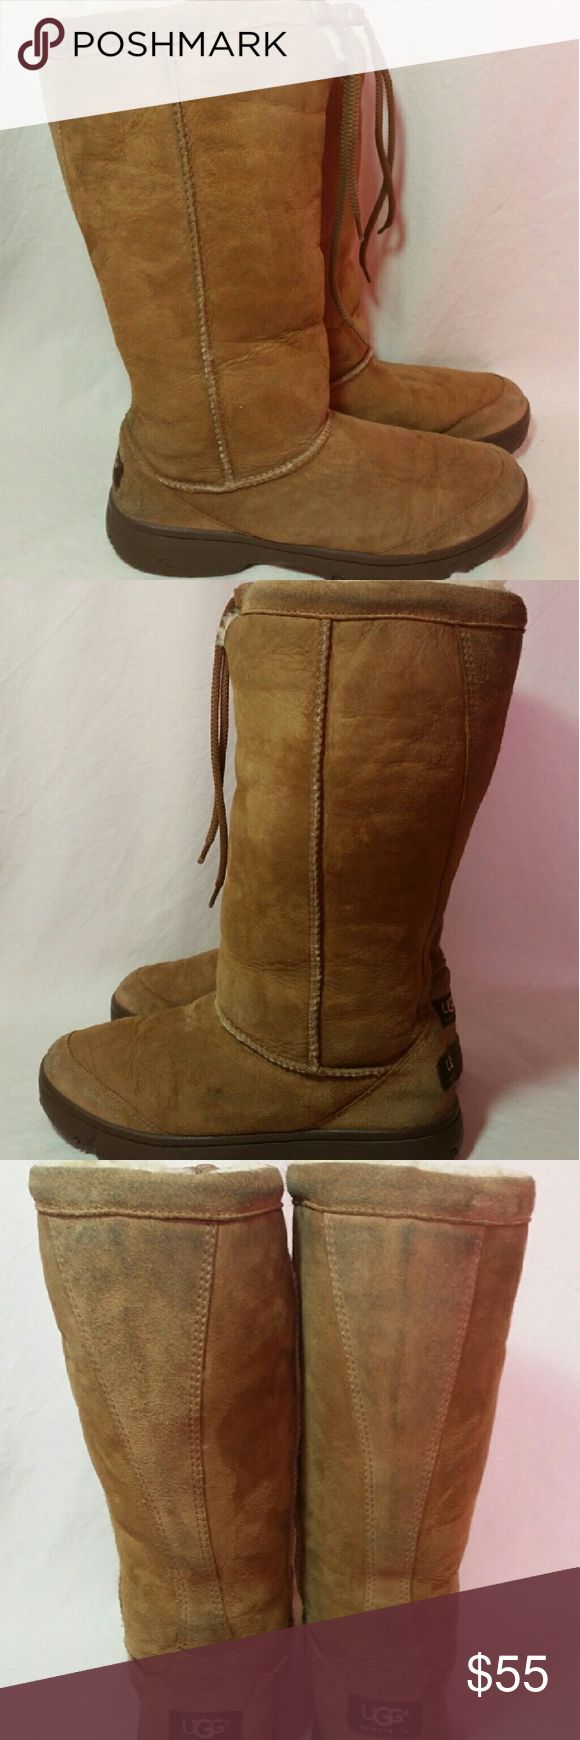 Womens UGG Ultimate Tall Sheepskin Boots Size 8 This pair of women's UGGS is simply awesome. They haven't been worn very much shown on the soles, but they have some marks around the top and back side, nothing horrible (shown in photos) This pair of UGGs Ultimate Tall Boot is made from grade A sheepskin and suede. Size 8 UGG Shoes Winter & Rain Boots